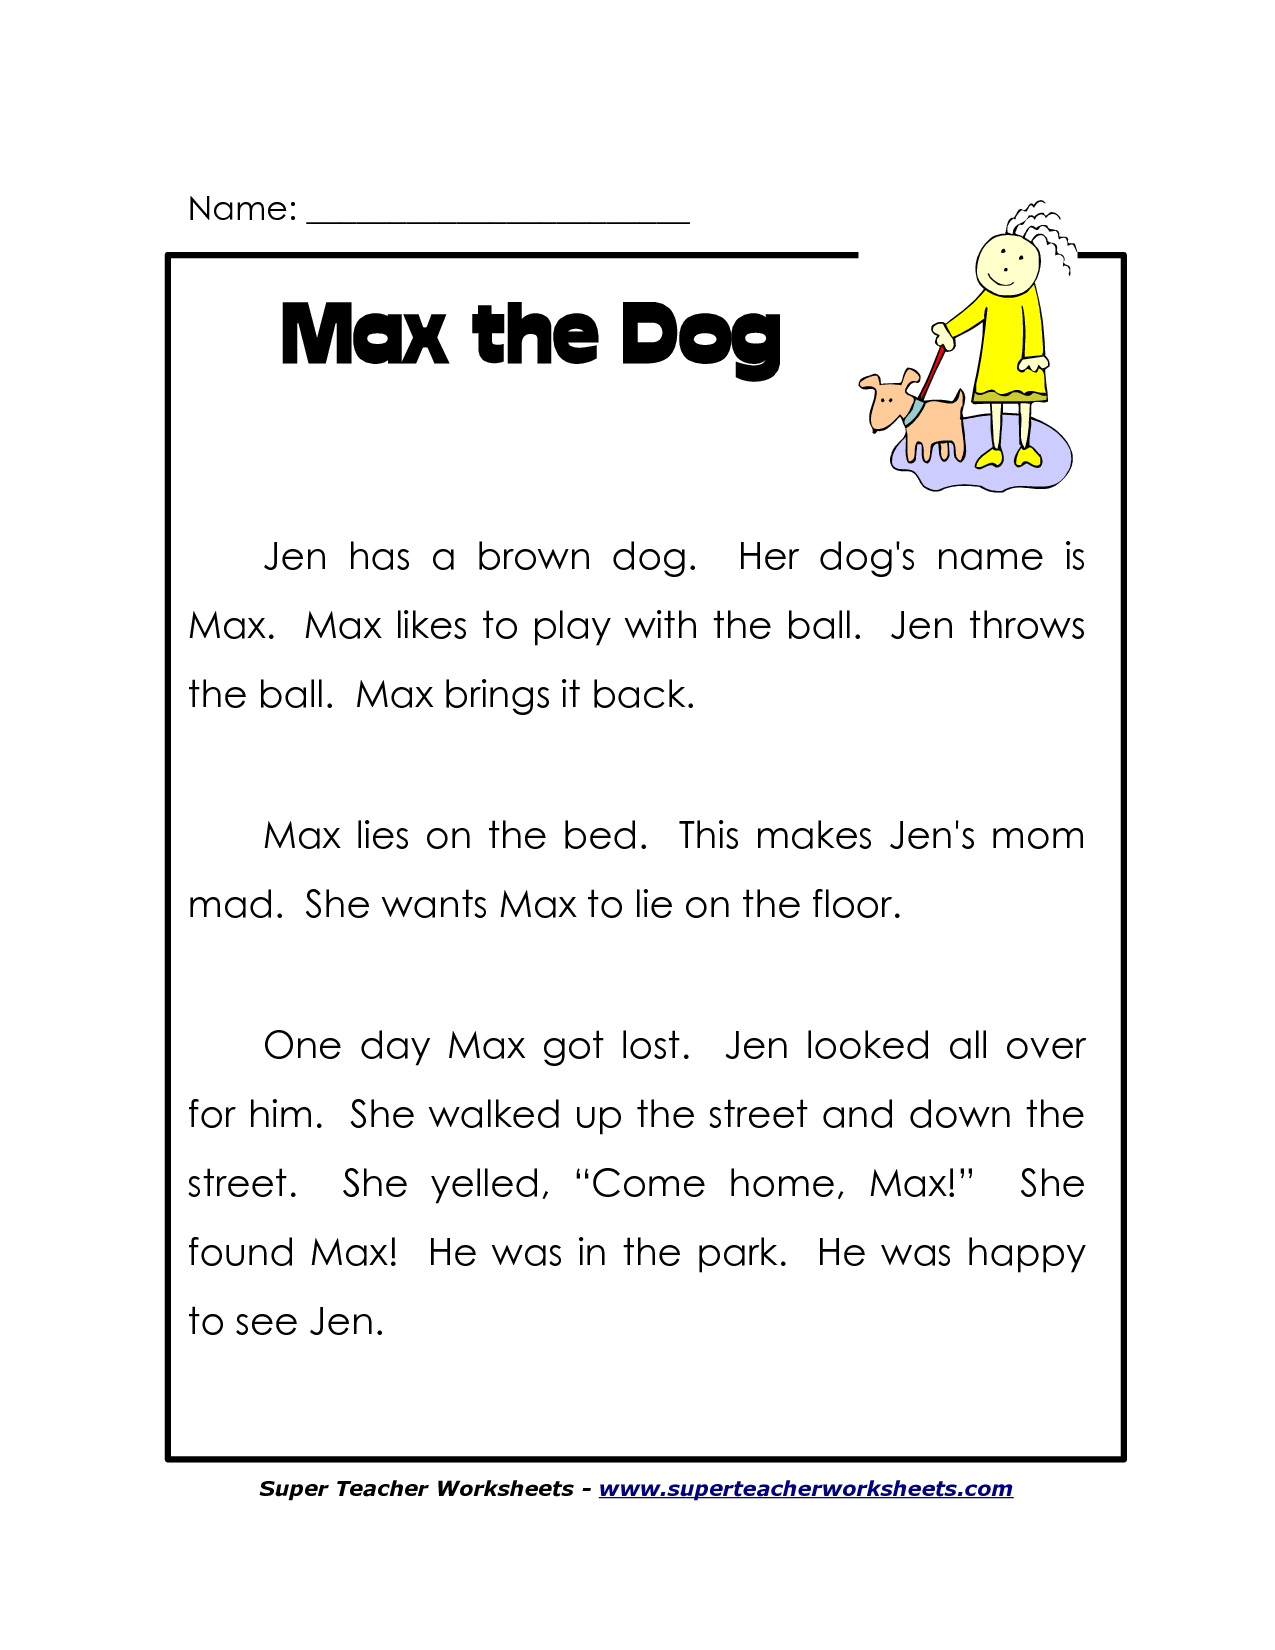 Worksheets Teacher Worksheets For 1 Grade 1st grade math and reading lessons tes teach printable test for k5 education resources